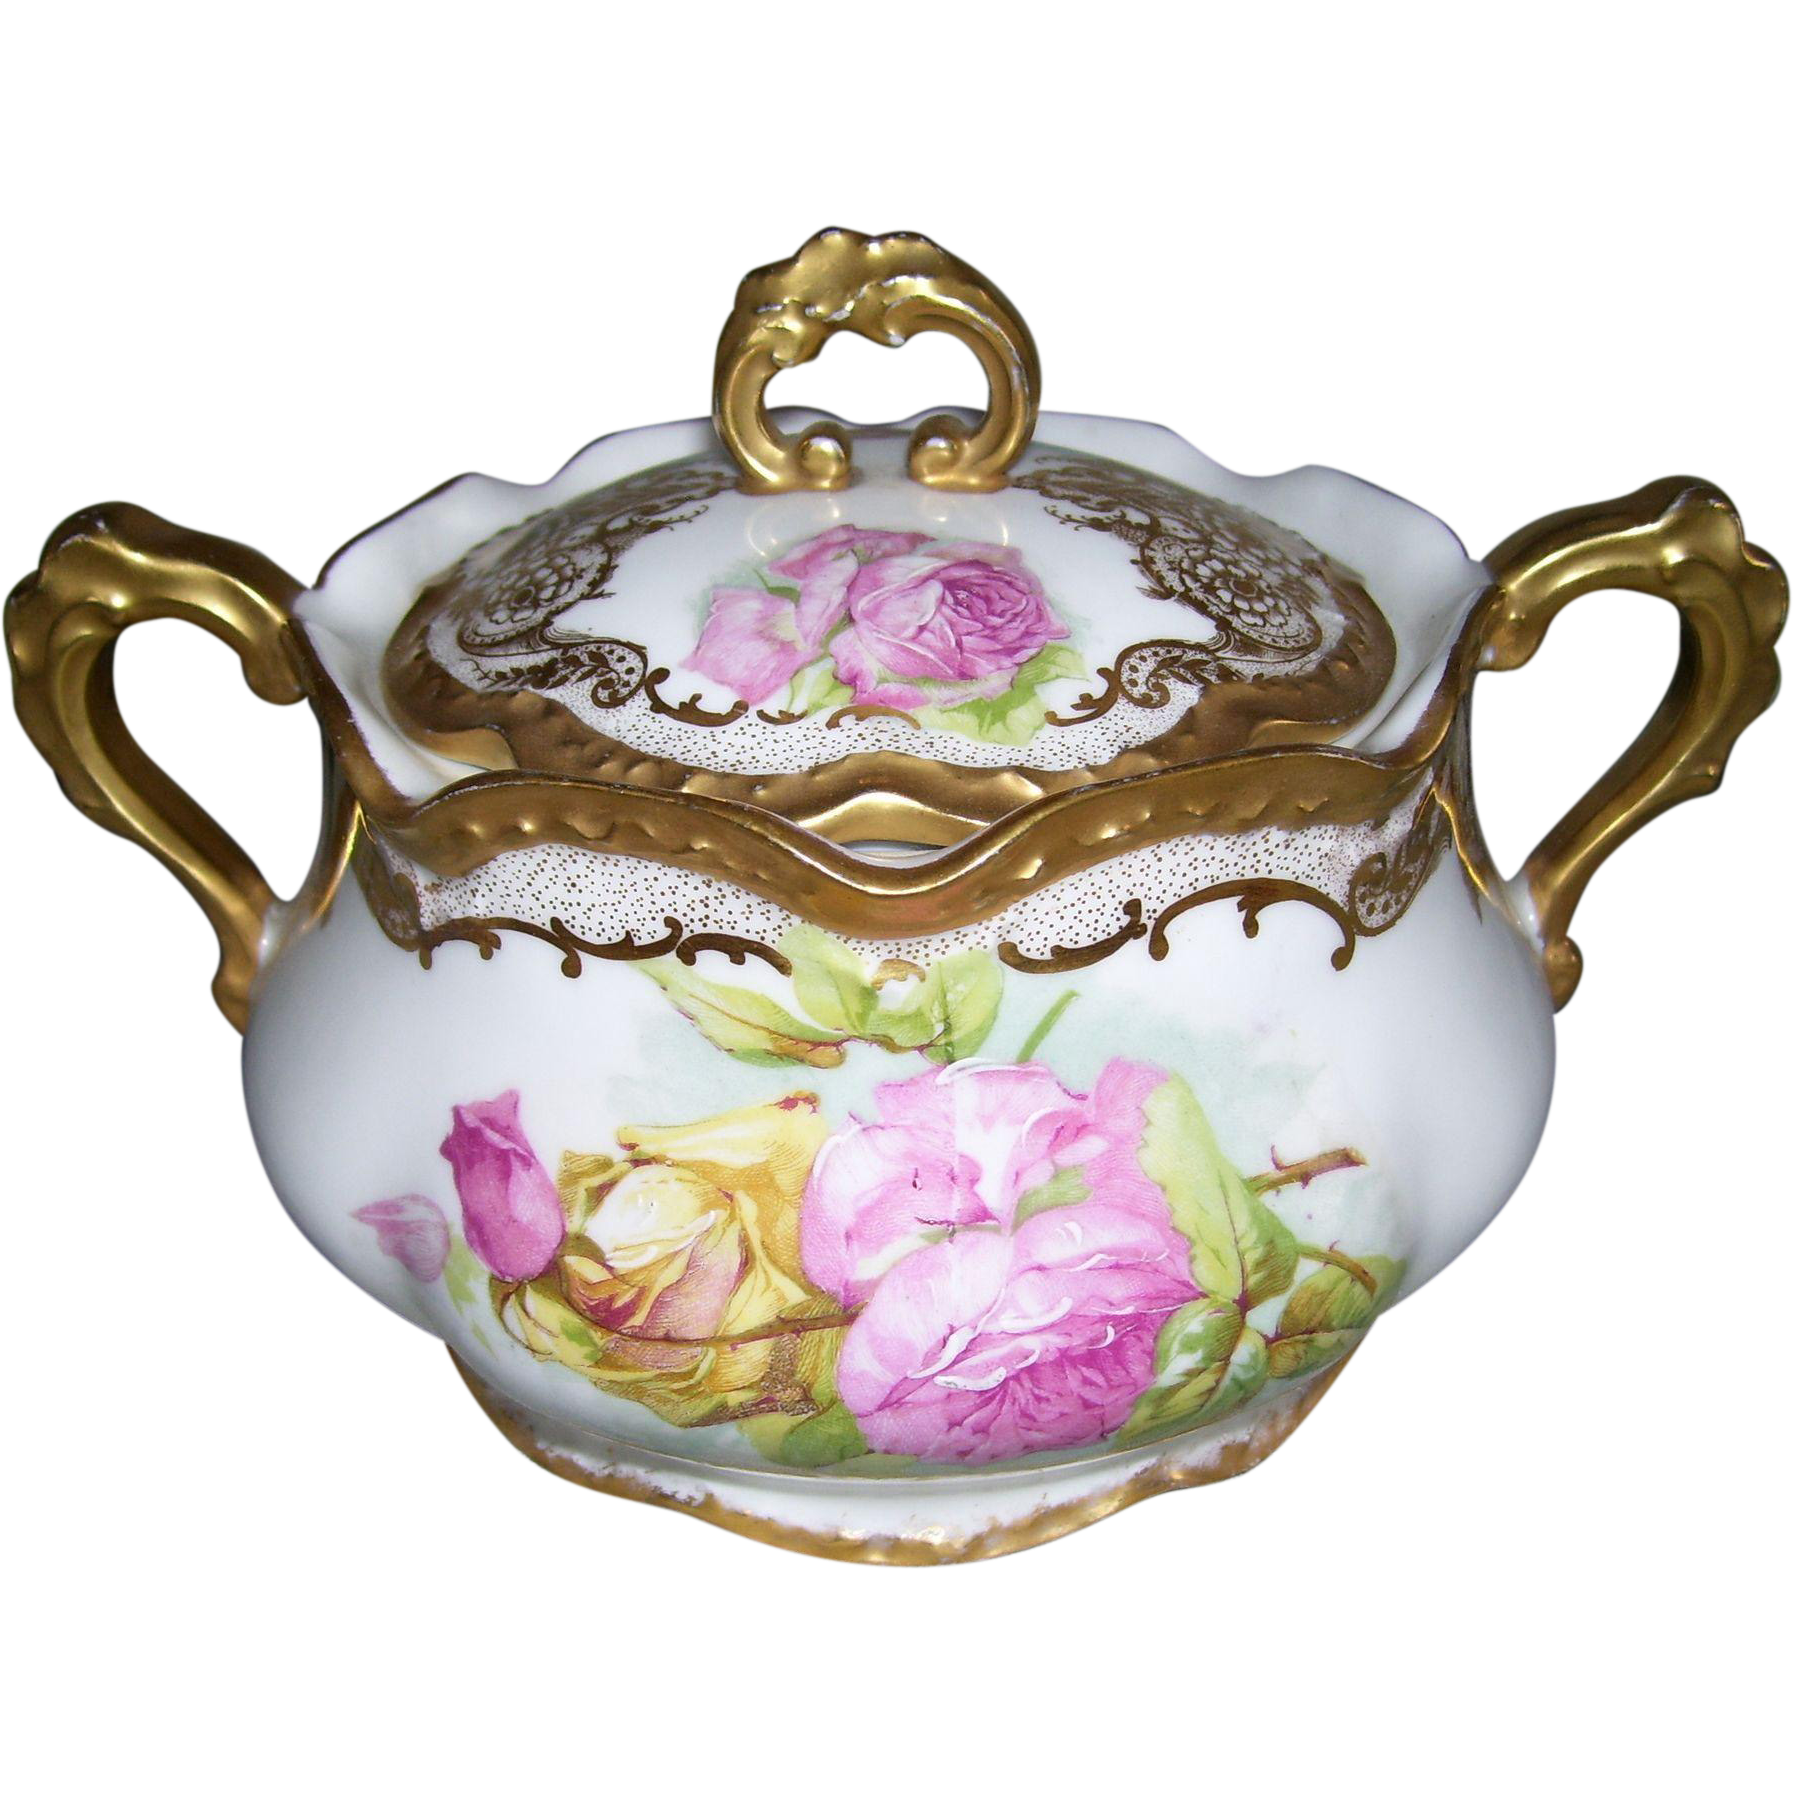 Limoges France Biscuit Jar Decorated in the Mixtion Method With Stencilled Roses Embellished with Hand Painting and an Abundance of Fancy Gold Filigree and Gilded Handles, Finial, Top and Bottom Scalloped Rims